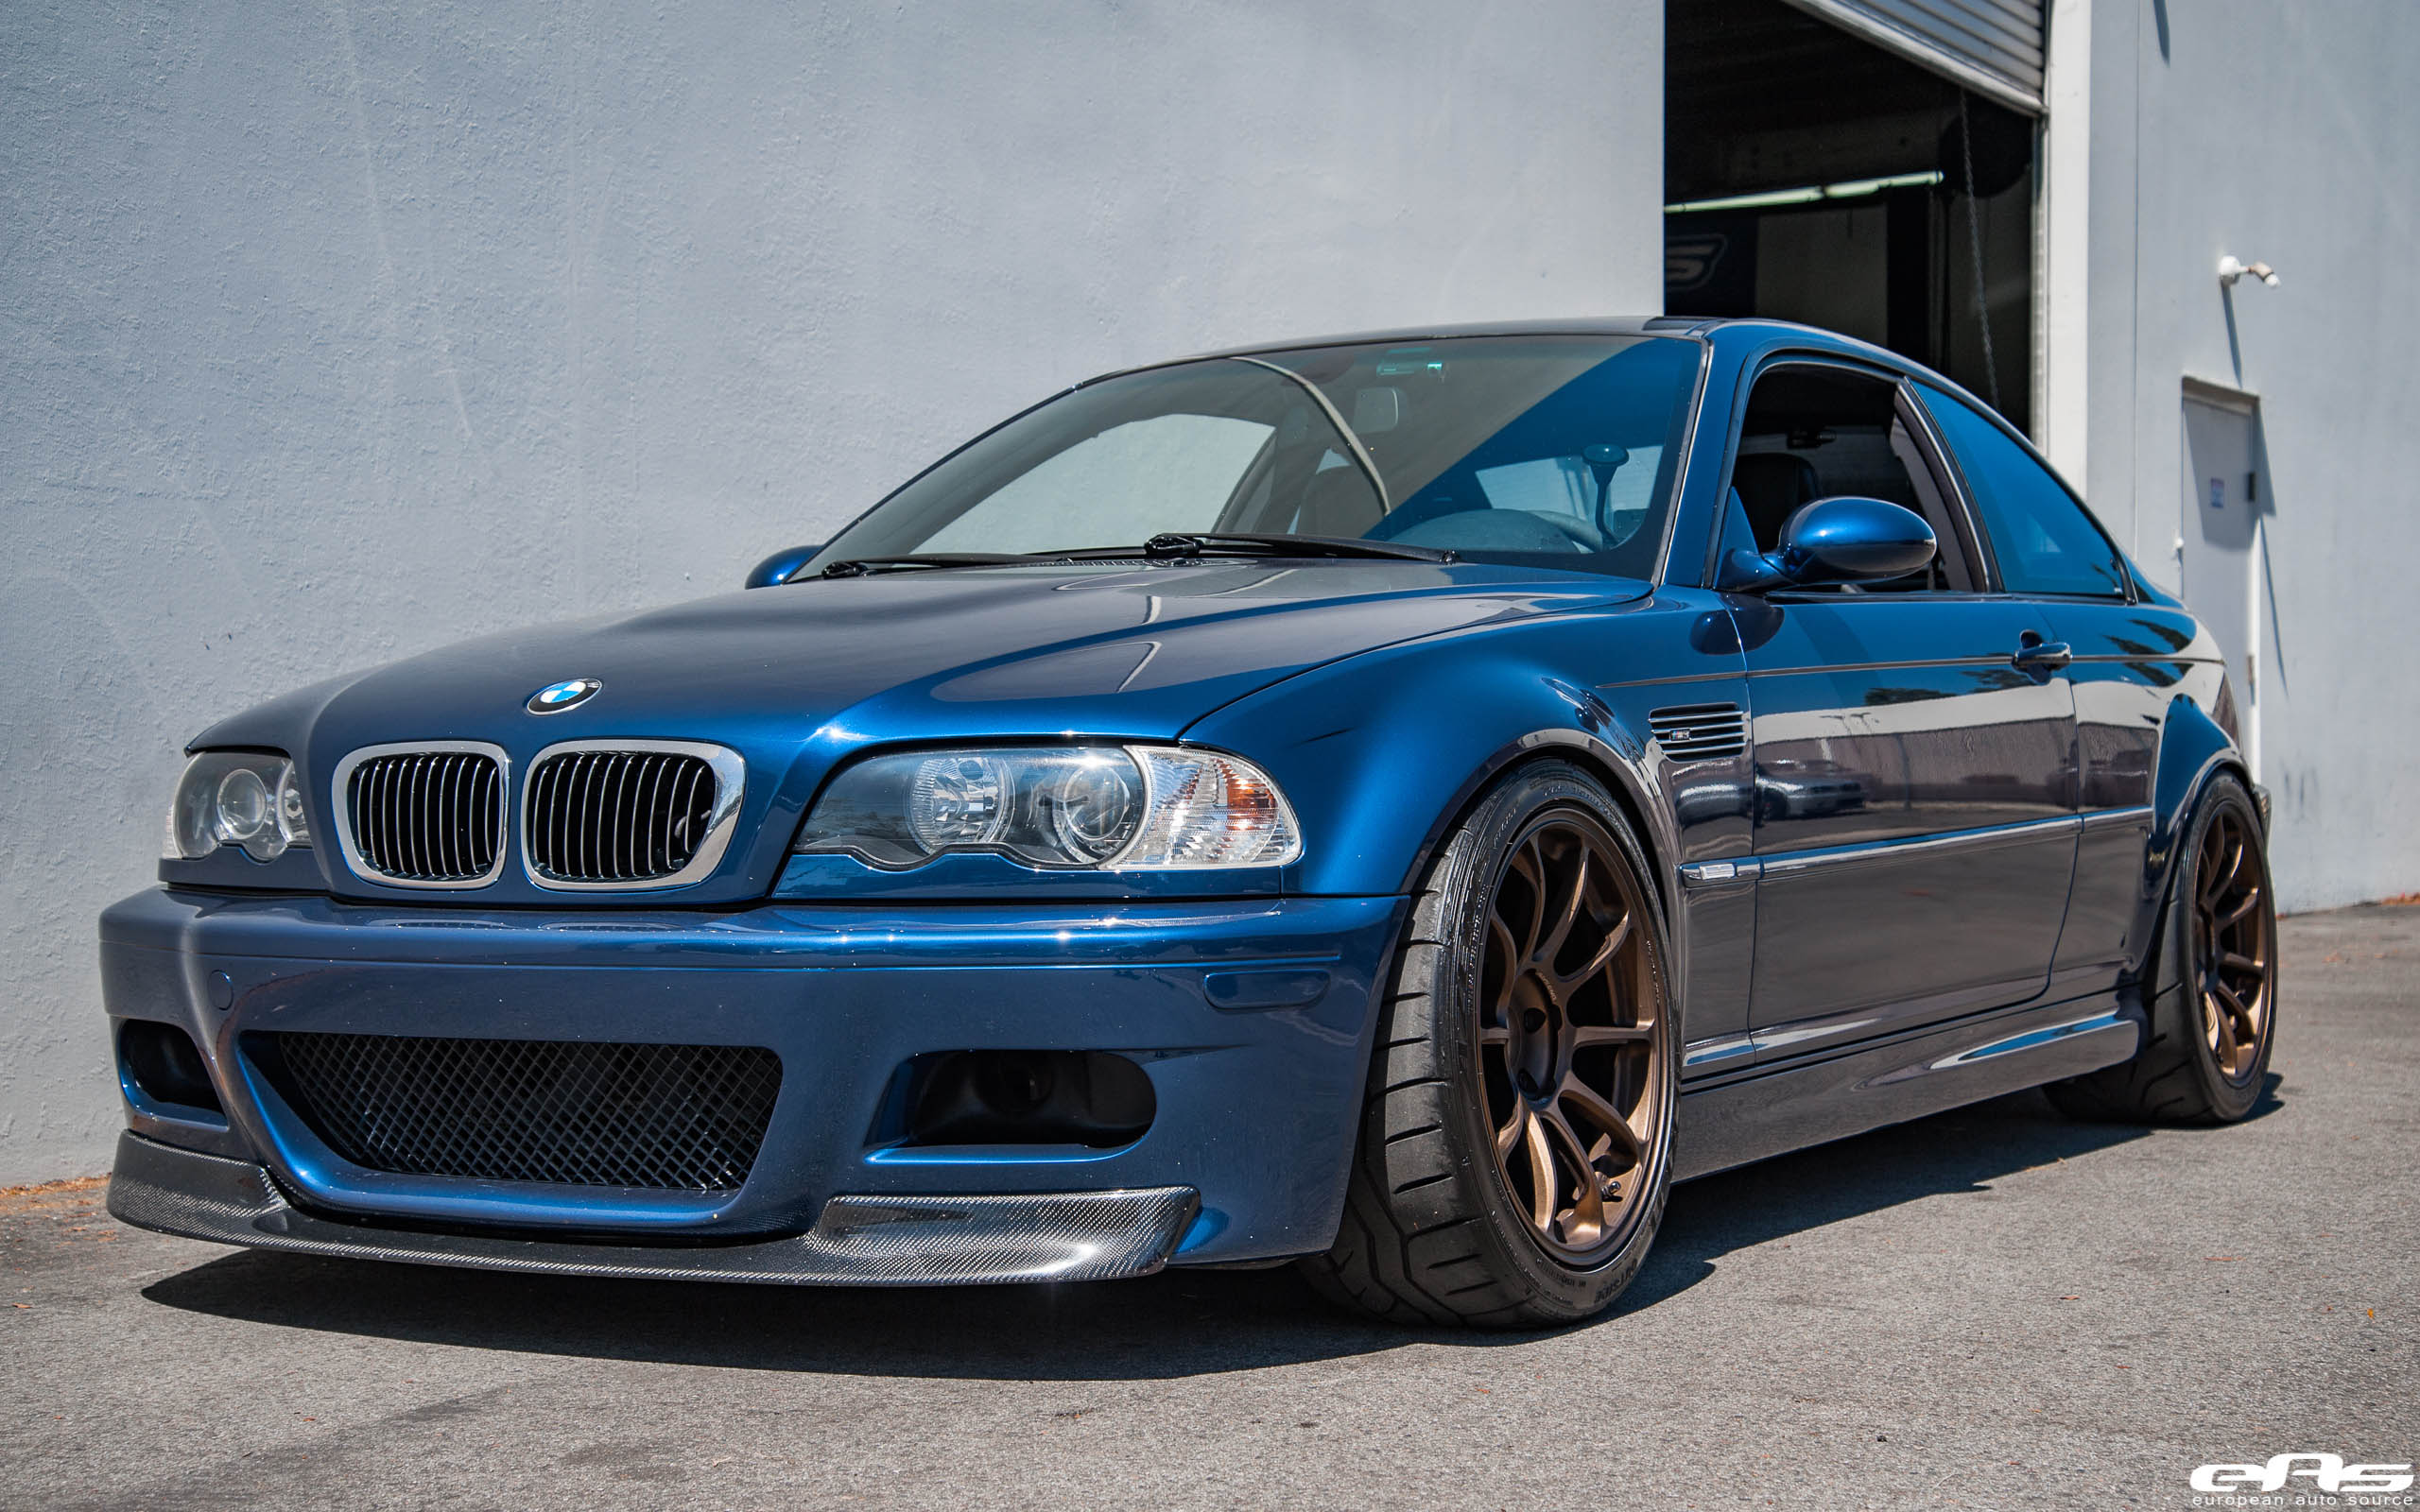 A Mystic Blue Bmw E46 M3 Gets Aftermarket Goodies At